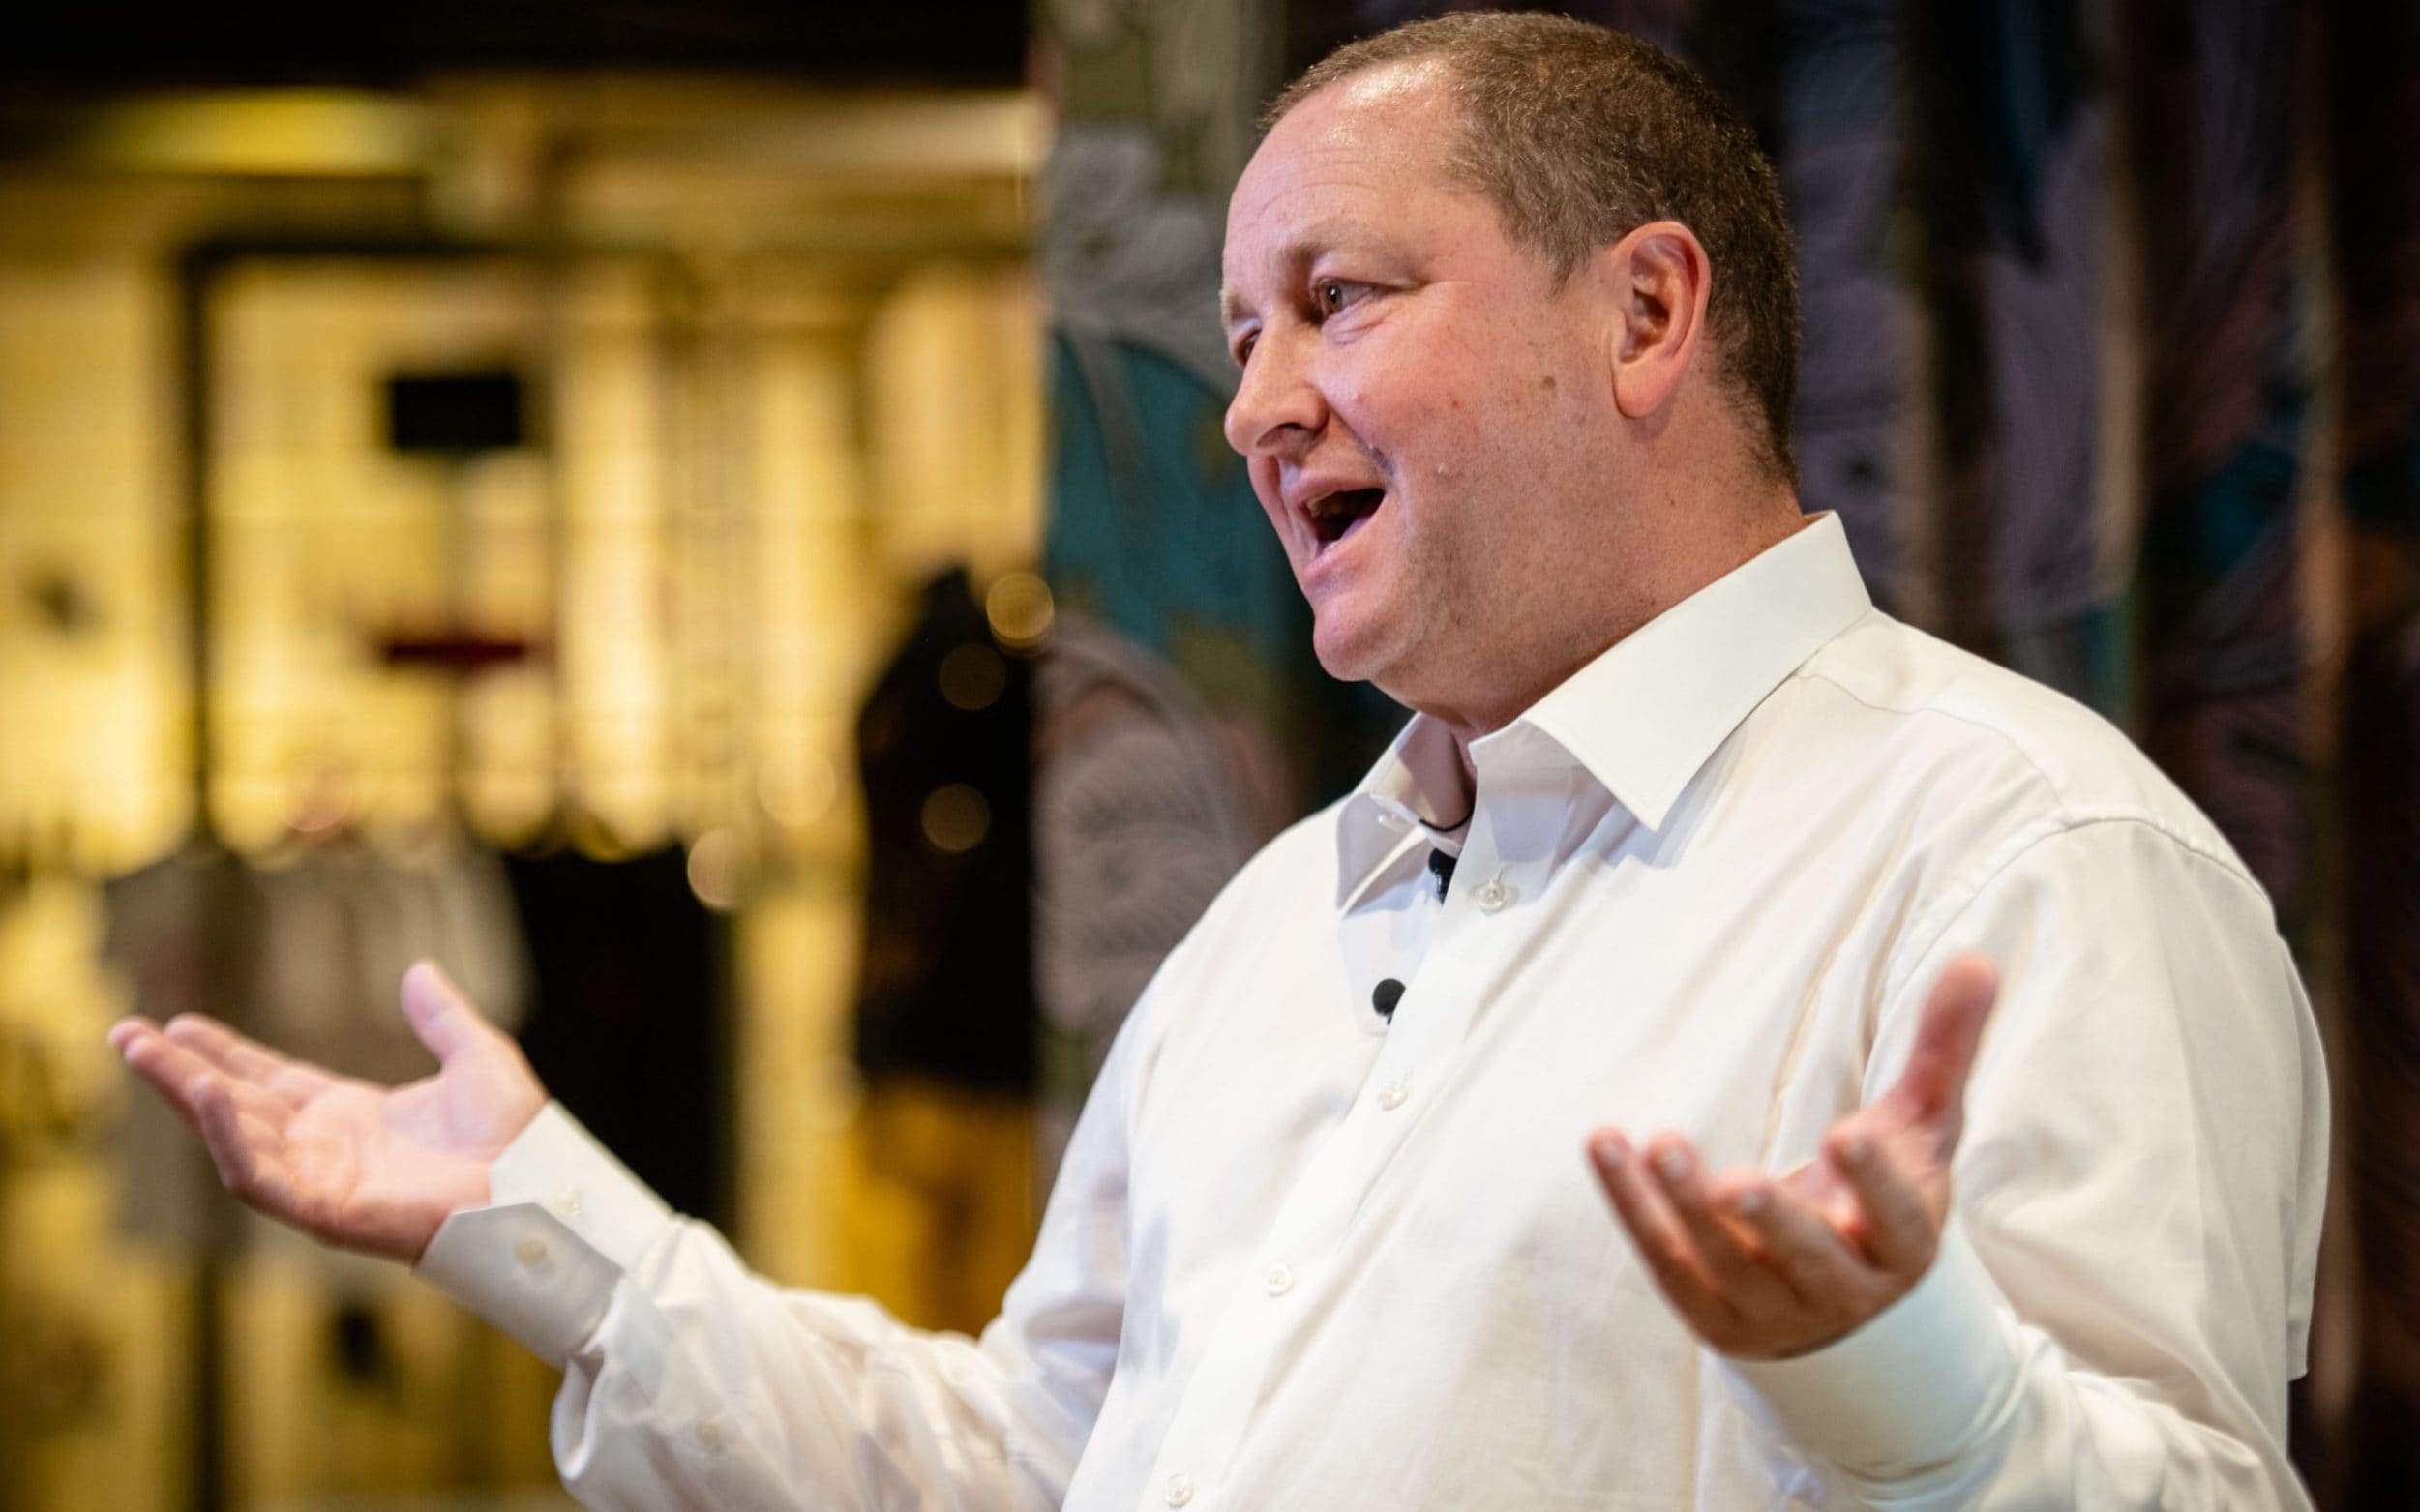 The sports direct boss says he wants a deal done by. Mike Ashley's apology seems sincere, but it wouldn't have ...